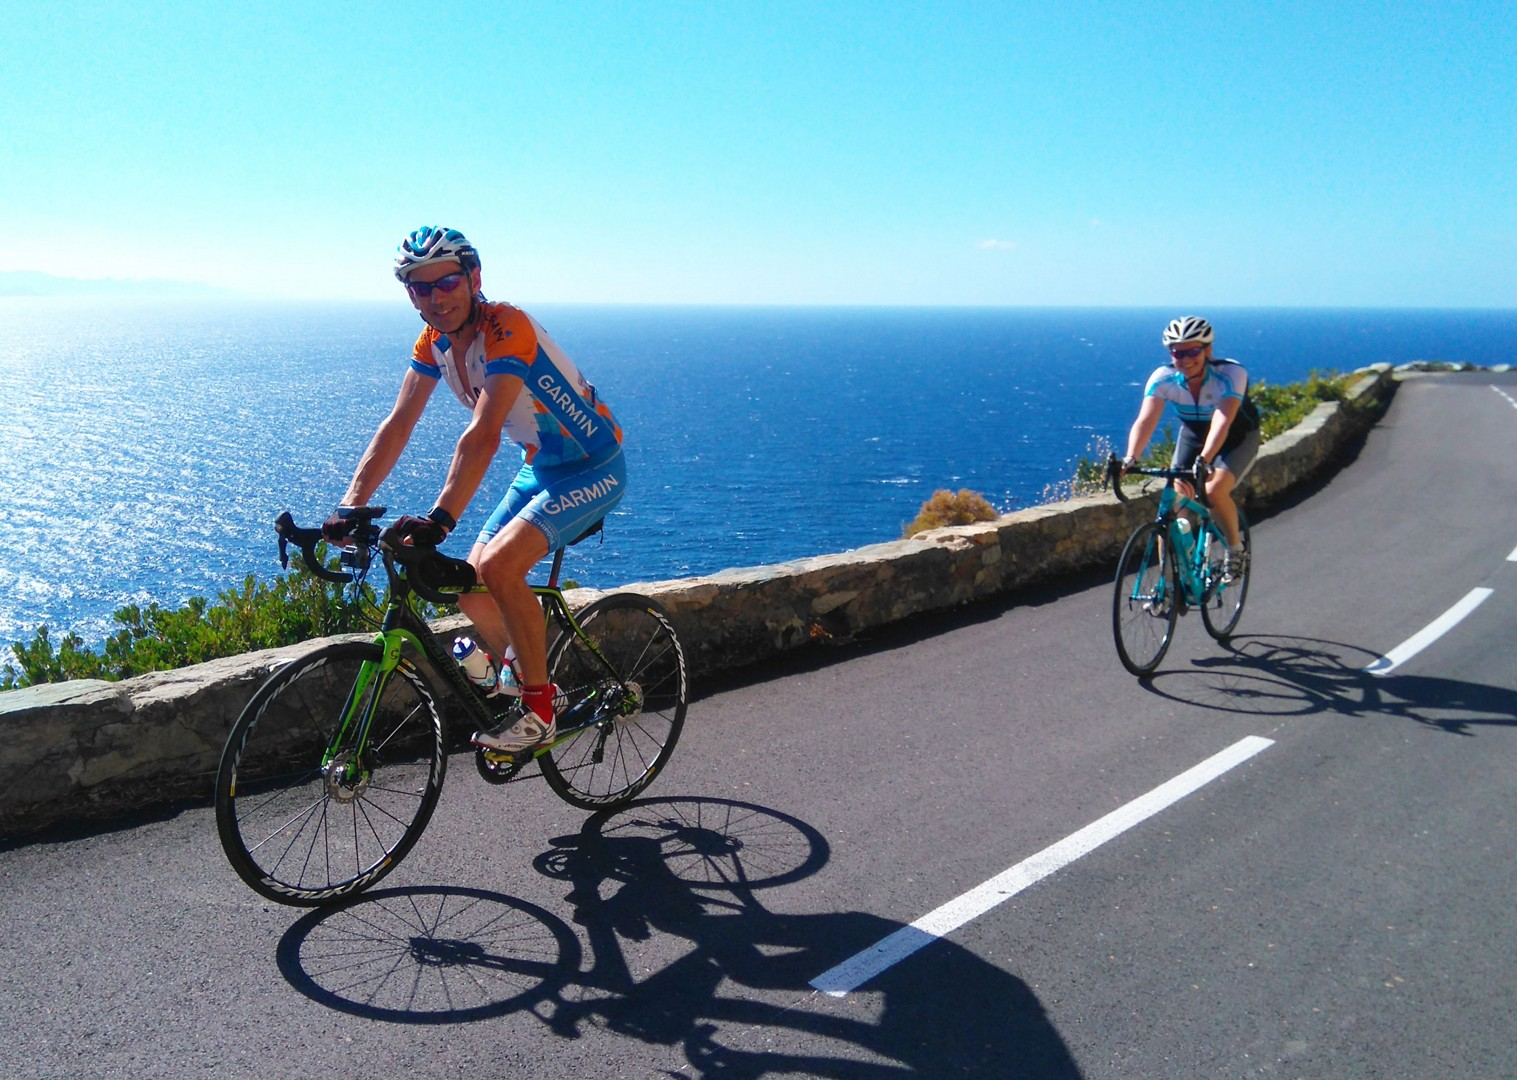 road-cycling-holiday-in-france-corsica-enjoy-the-ride.jpg - France - Corsica - Southern Secrets - Guided Road Cycling Holiday - Road Cycling